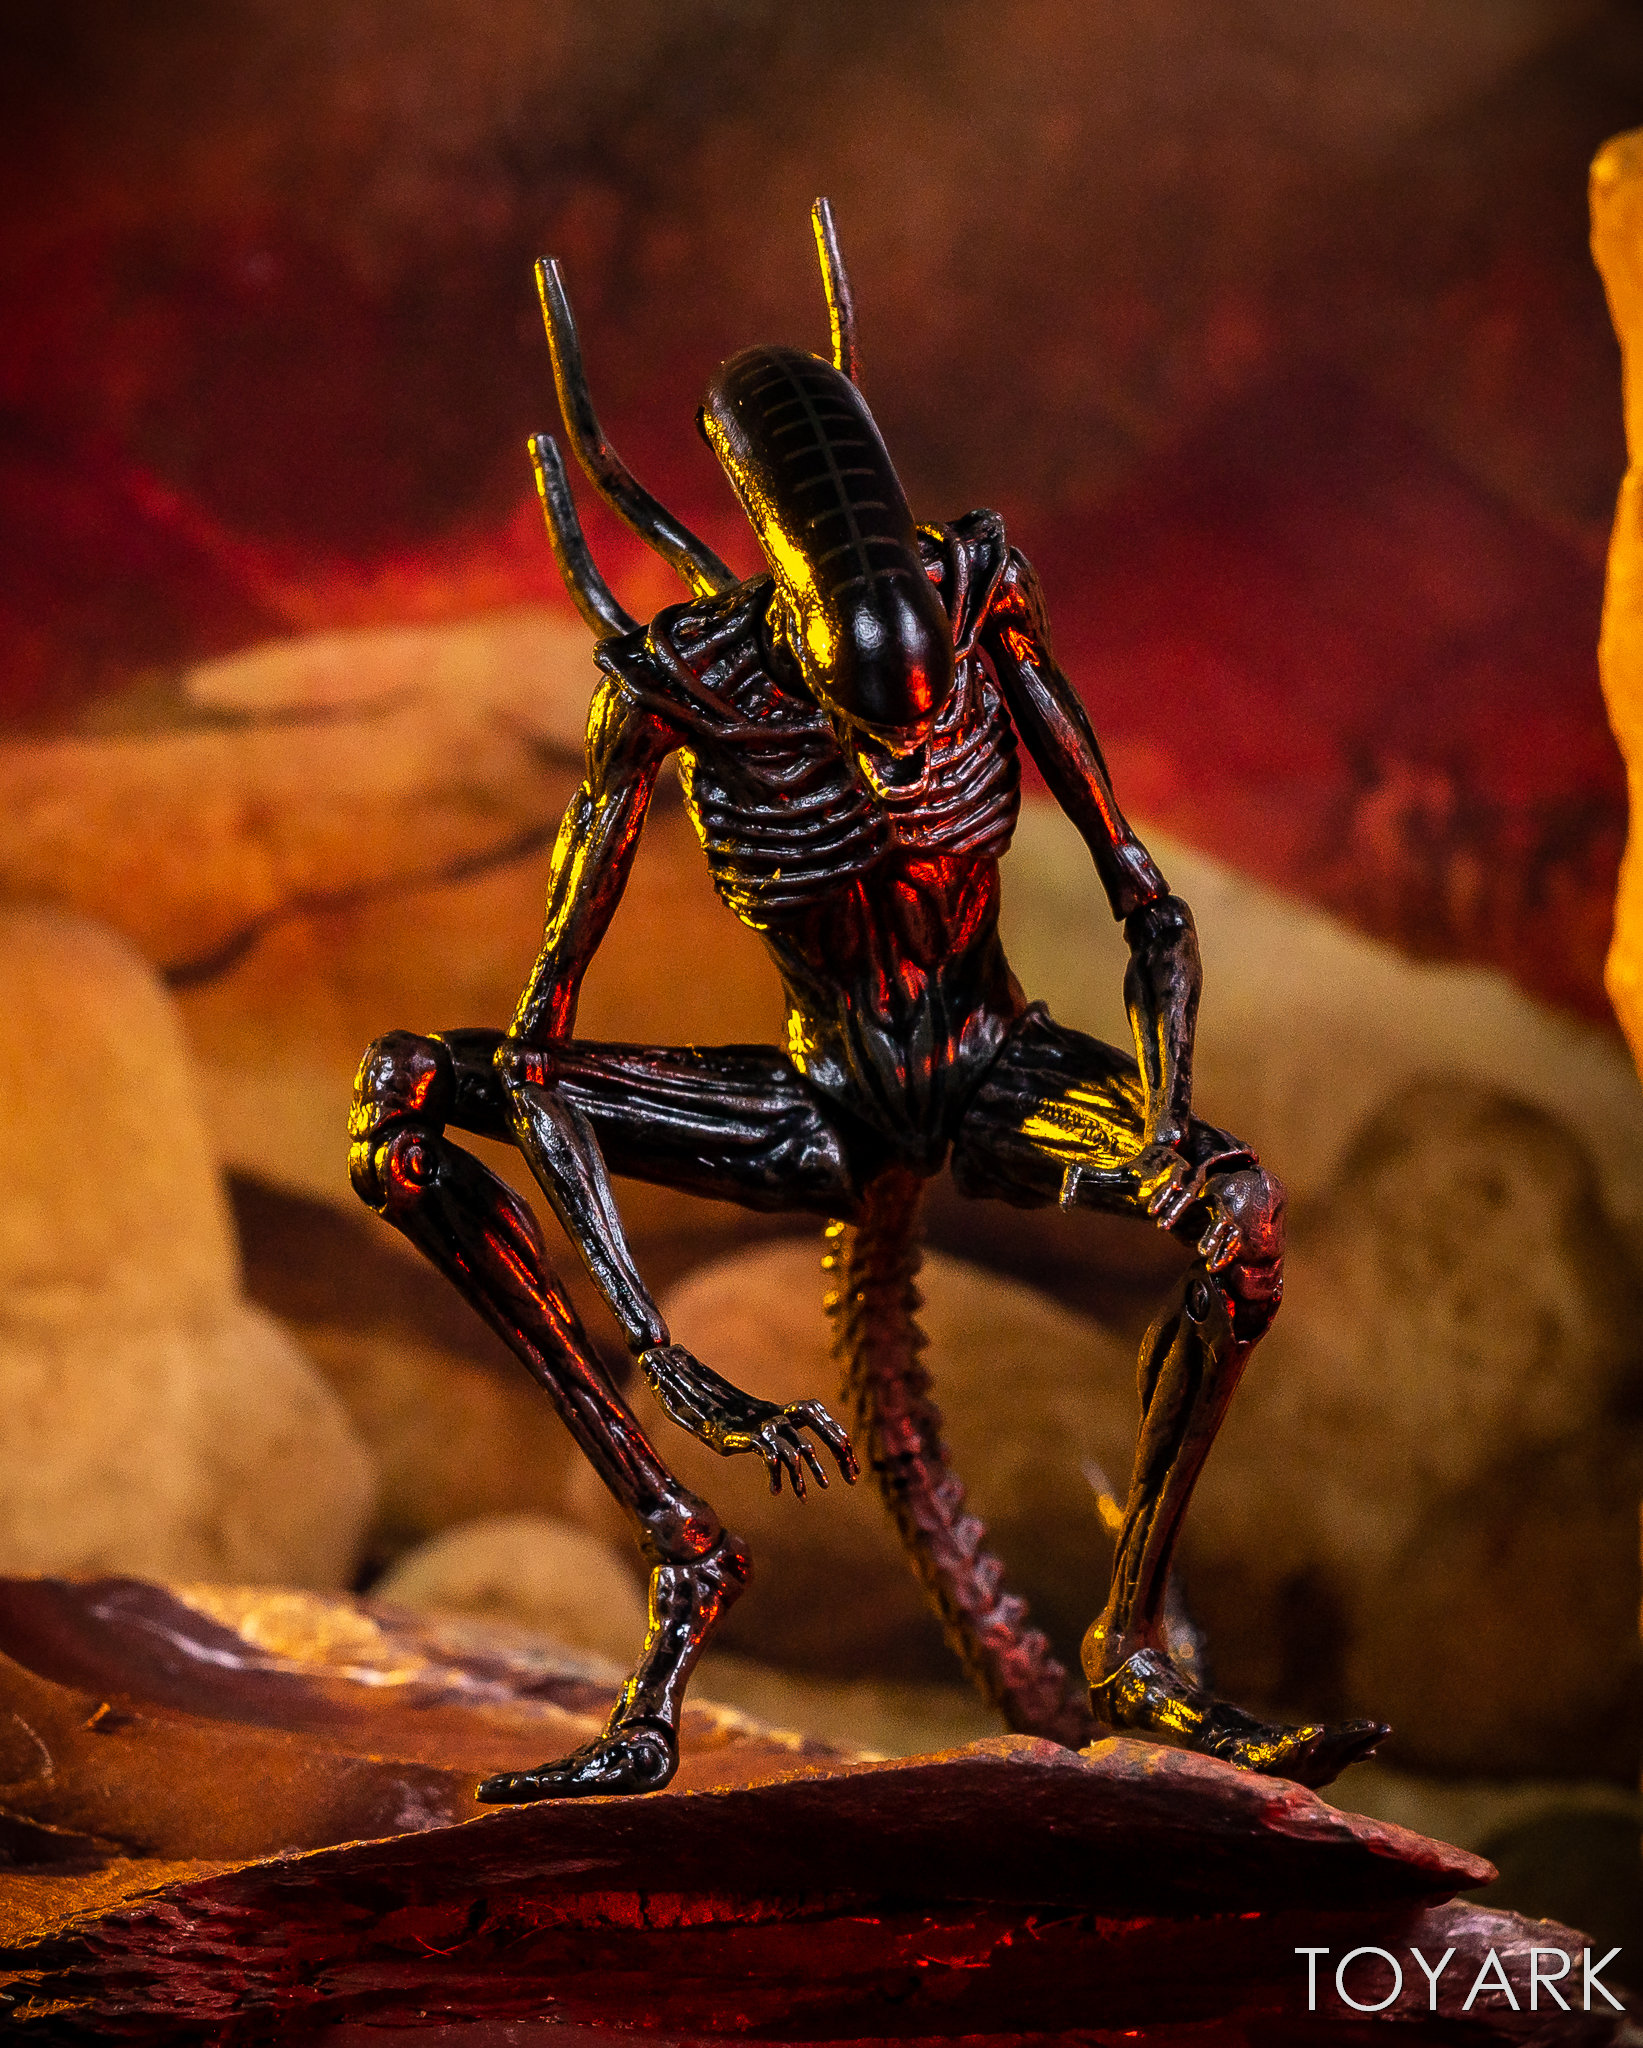 https://news.toyark.com/wp-content/uploads/sites/4/2019/02/Hiya-Toys-Alien-Covenant-Figures-033.jpg